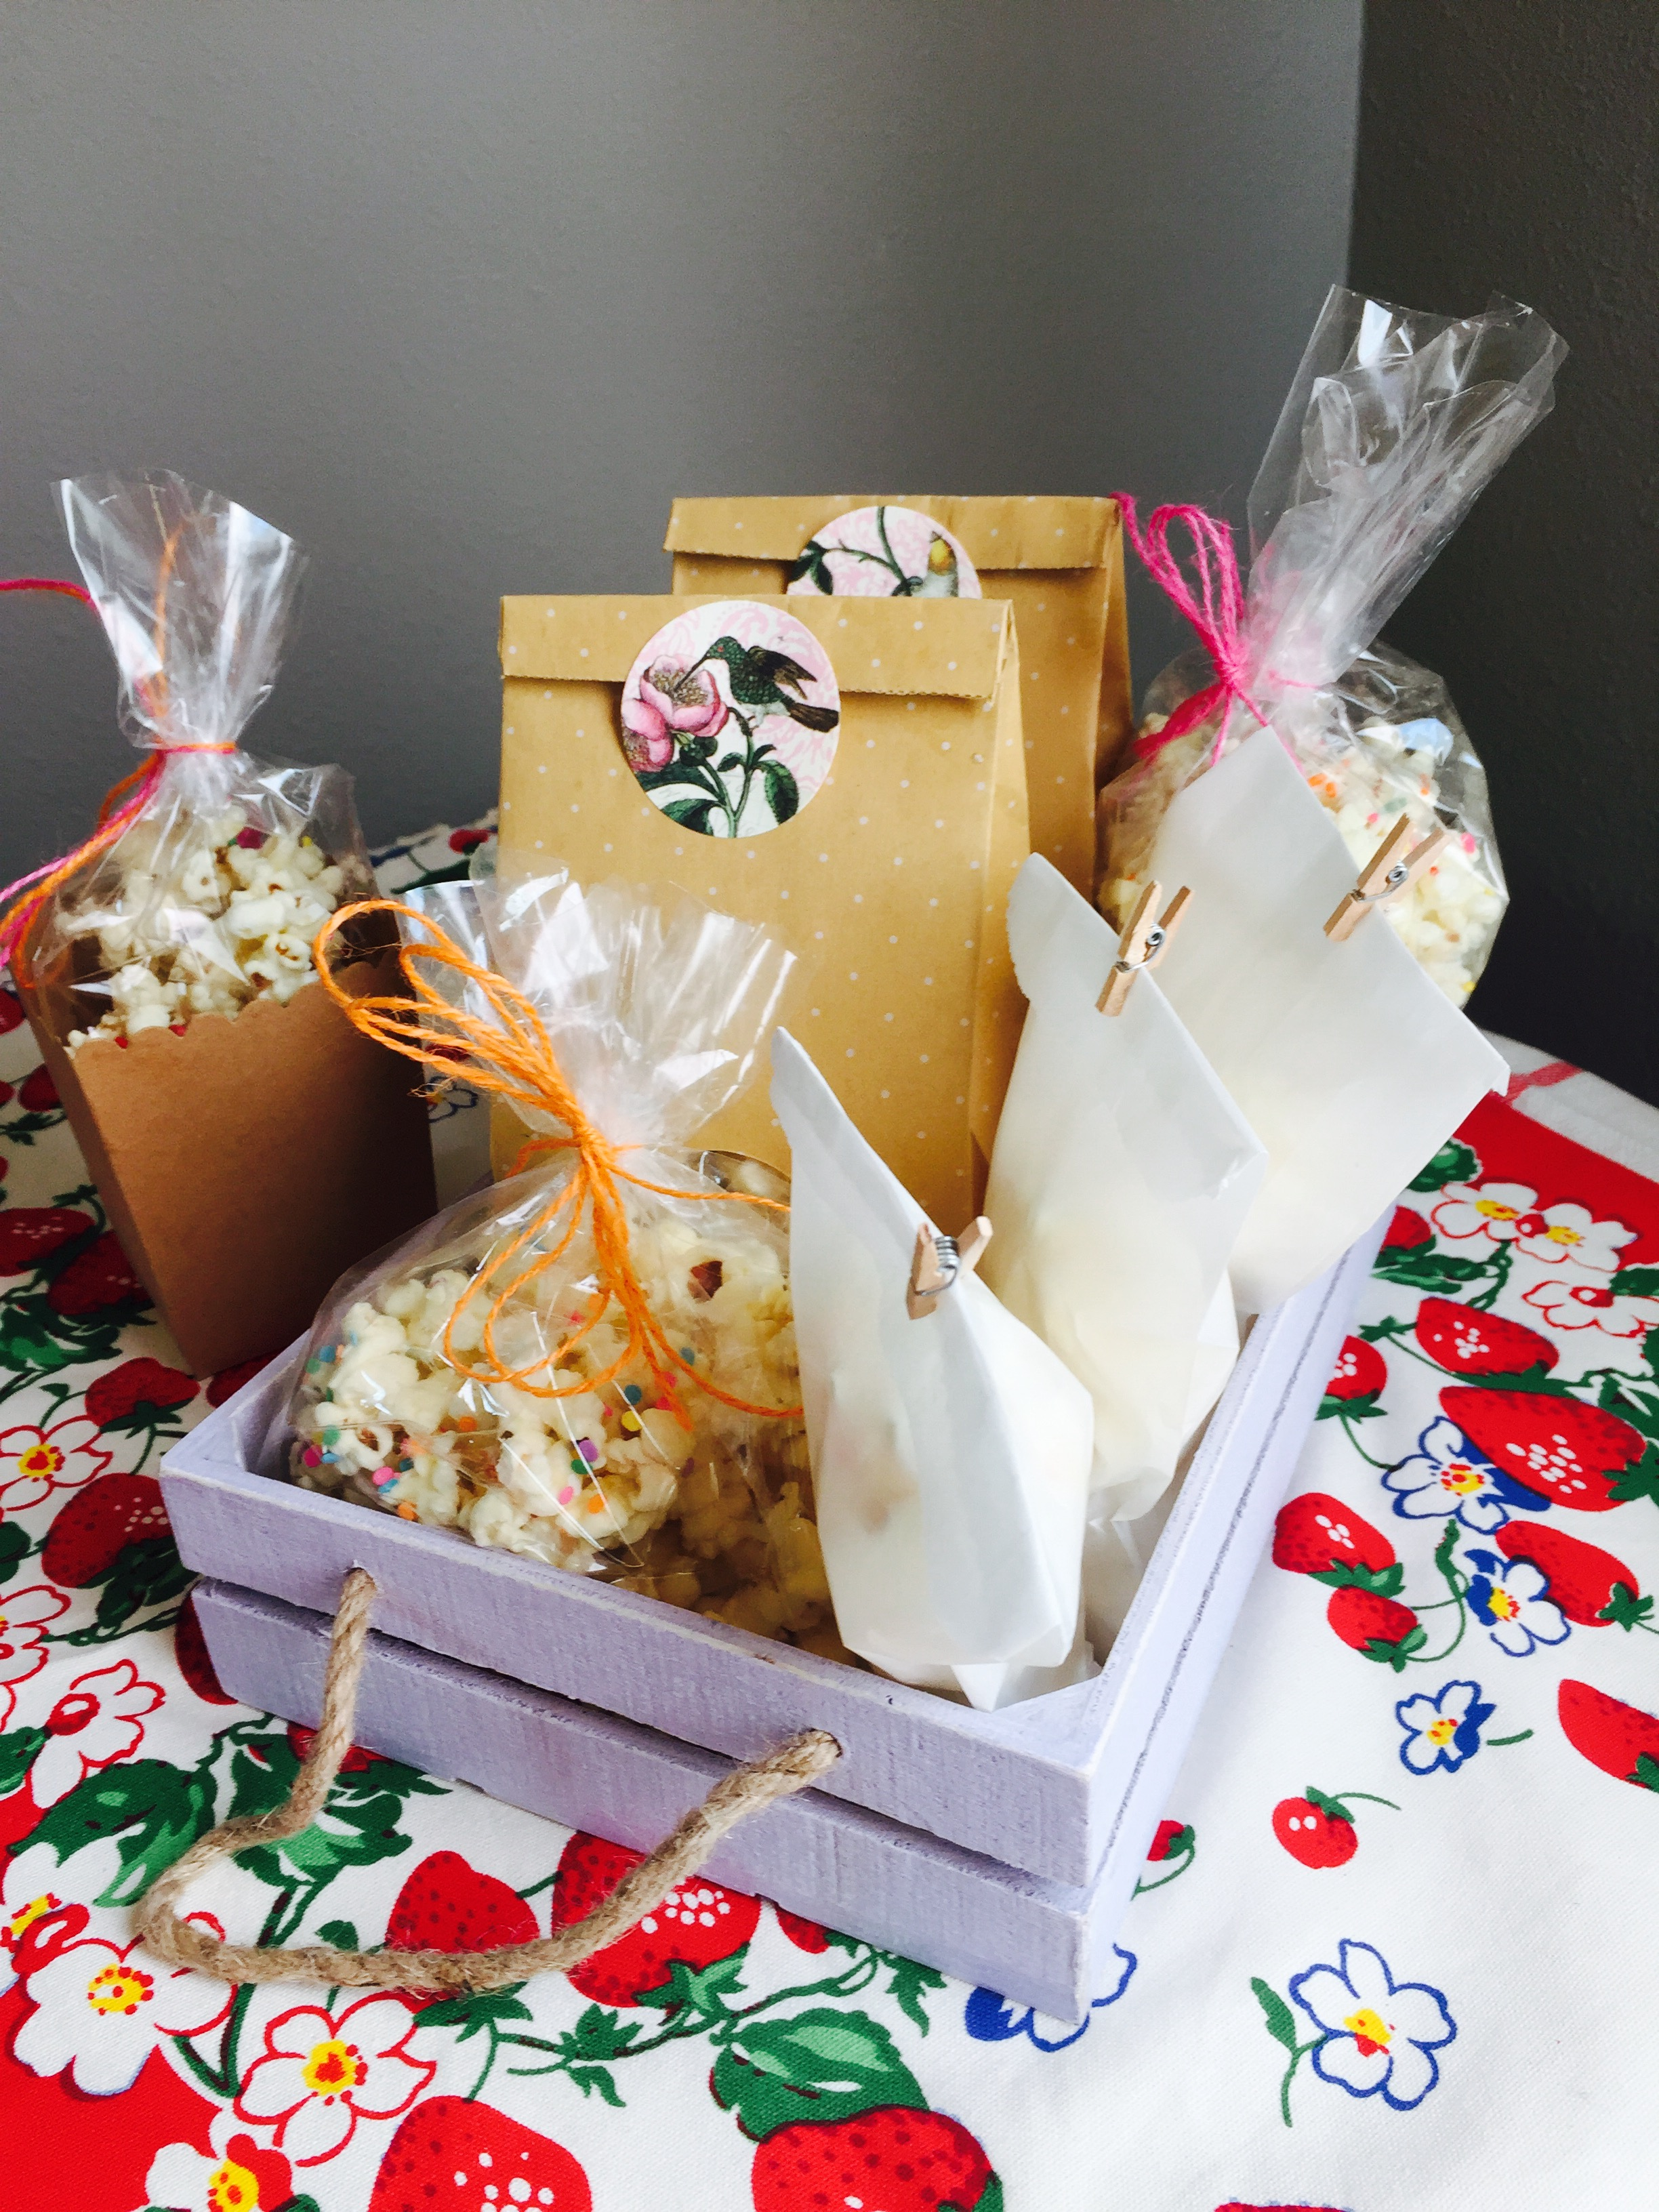 bags of white chocolate popcorn in a purple crate for gifting